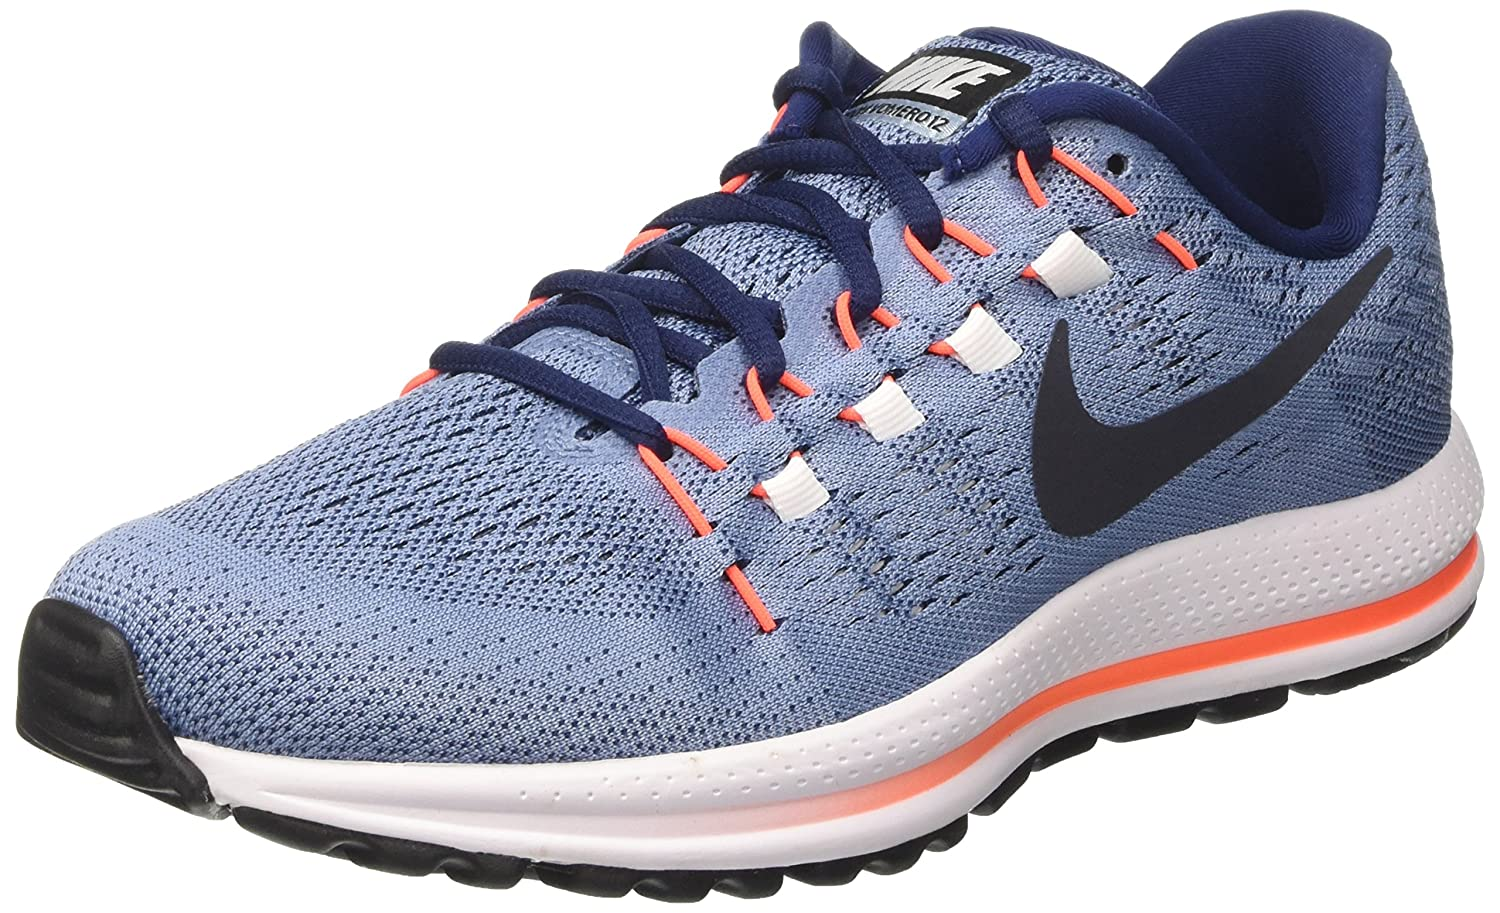 8b0fe0a4f11a8 Nike Men s Air Zoom Vomero 12 Blue Running Shoes(863762-403) (UK-7 (US-8))   Buy Online at Low Prices in India - Amazon.in